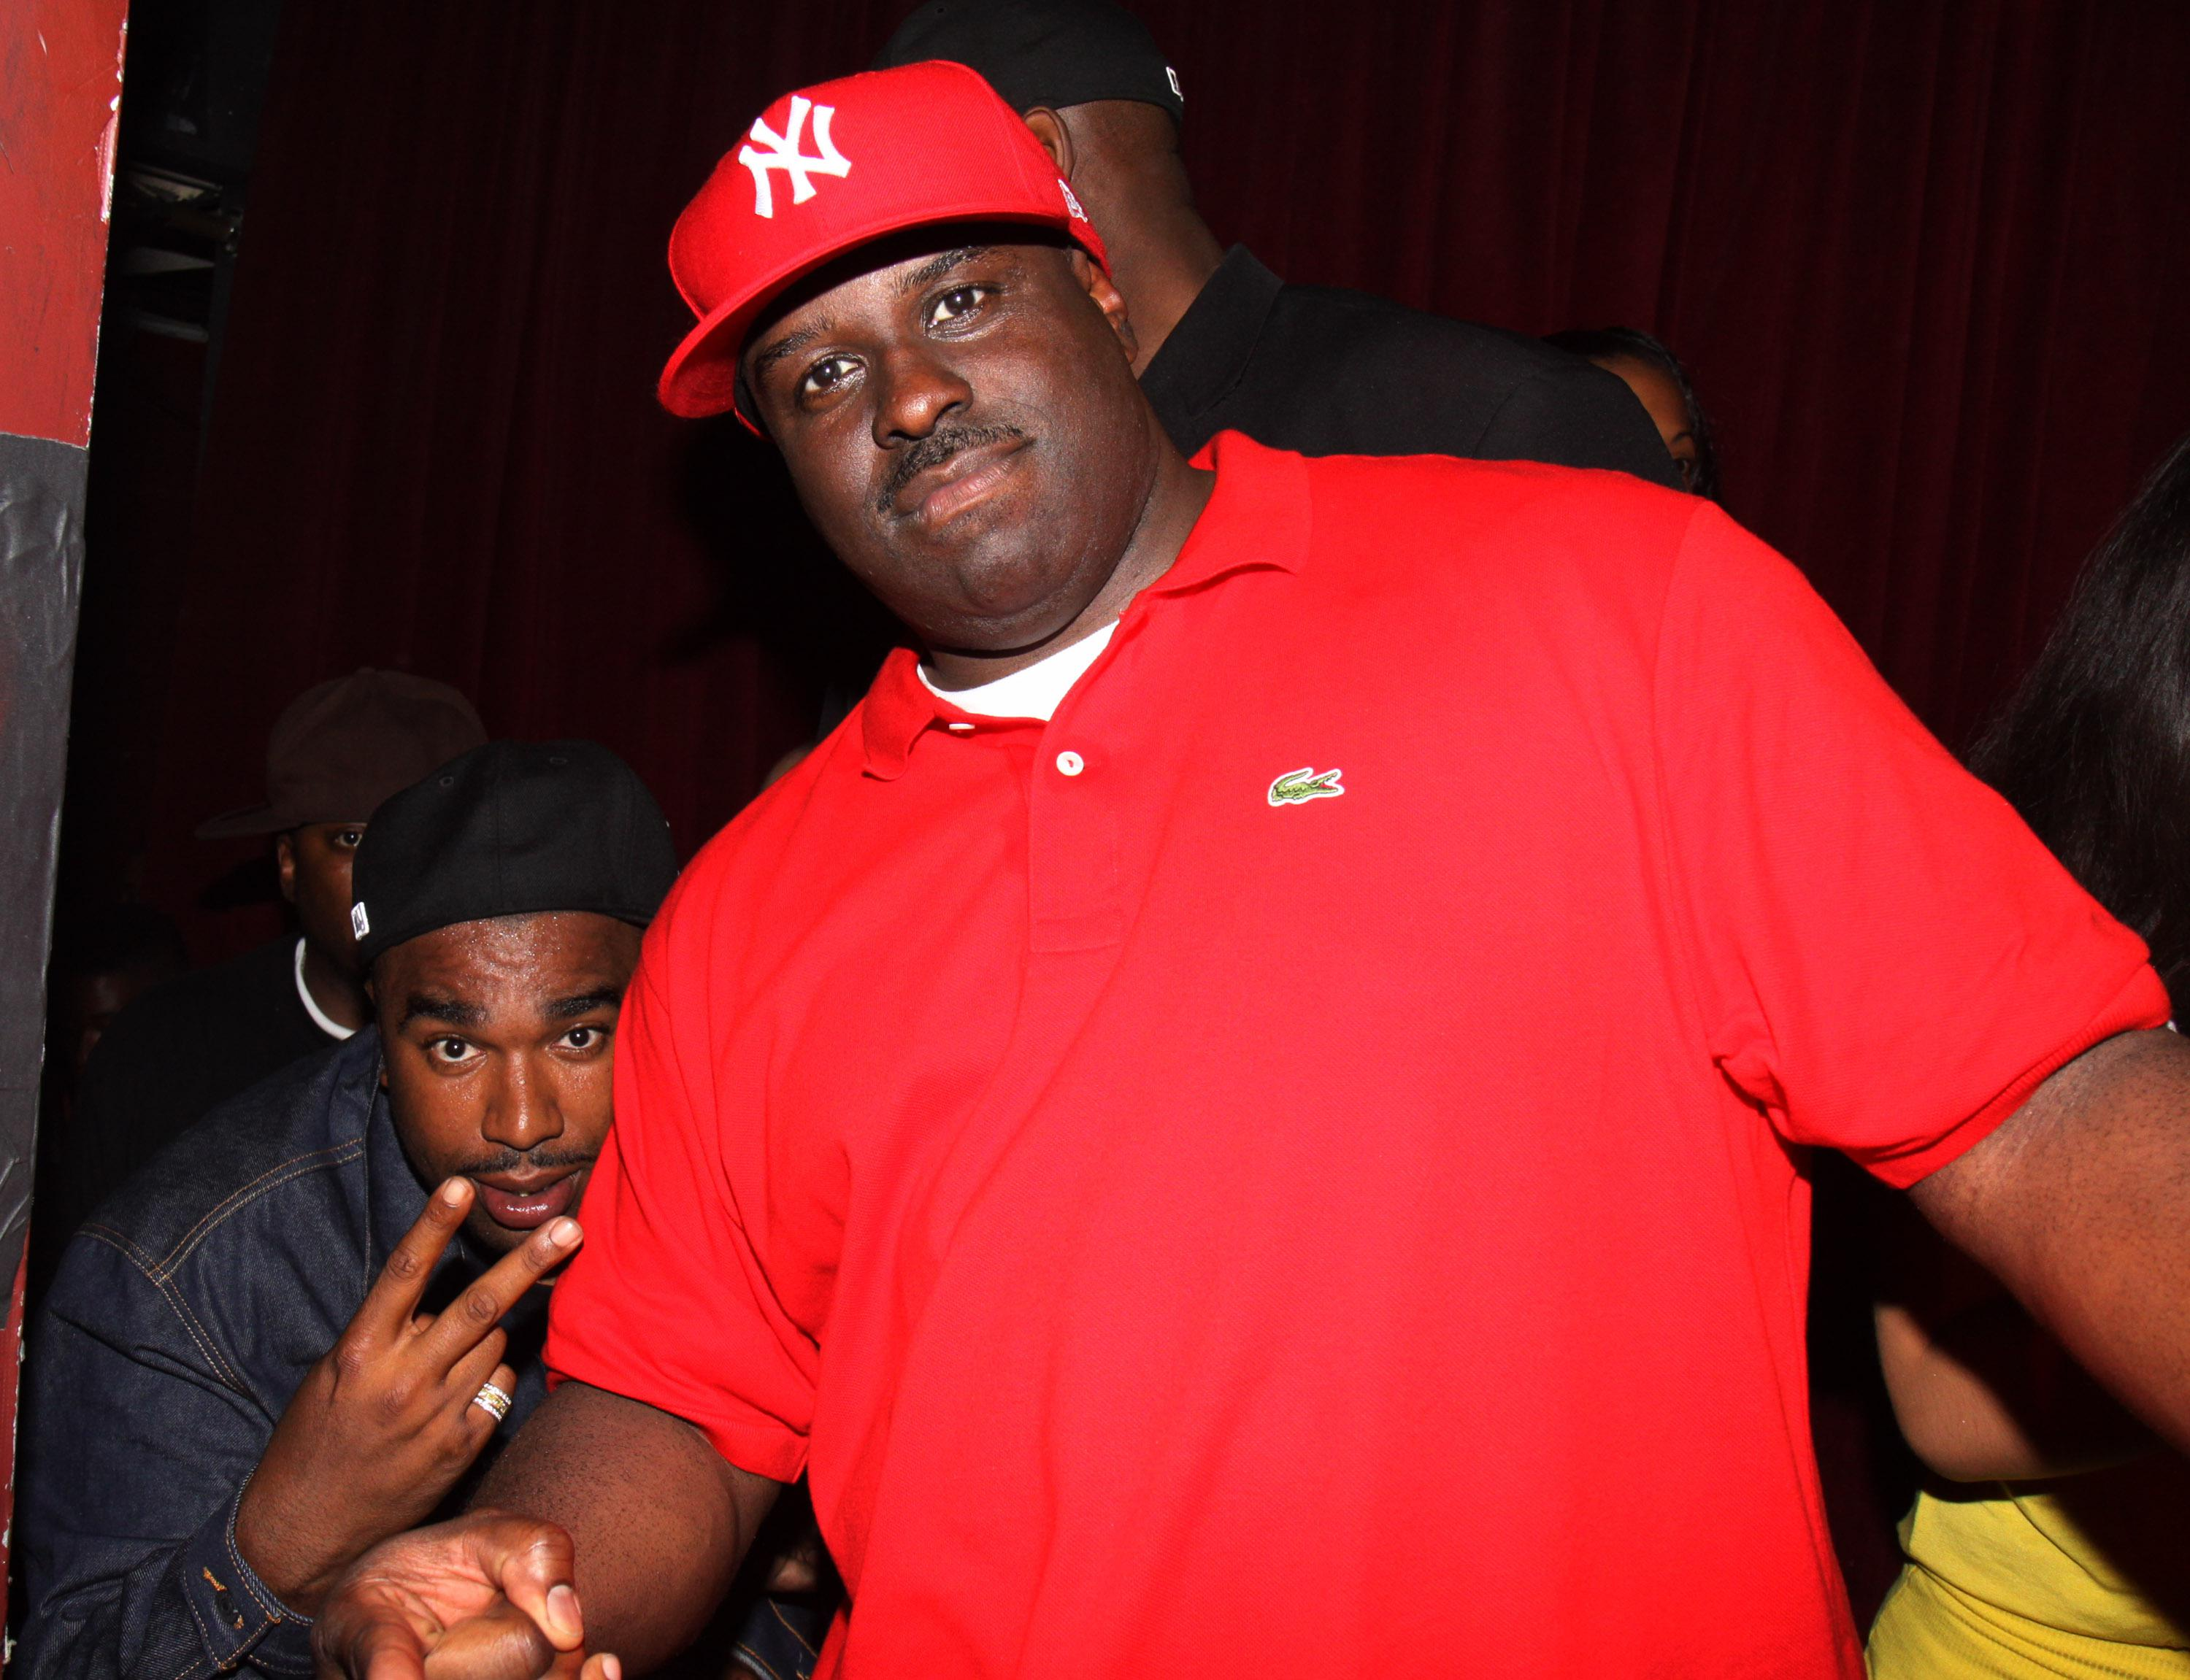 A Night Of Hip Hop Legends At B.B. King Blues Club & Grill - May 24, 2009